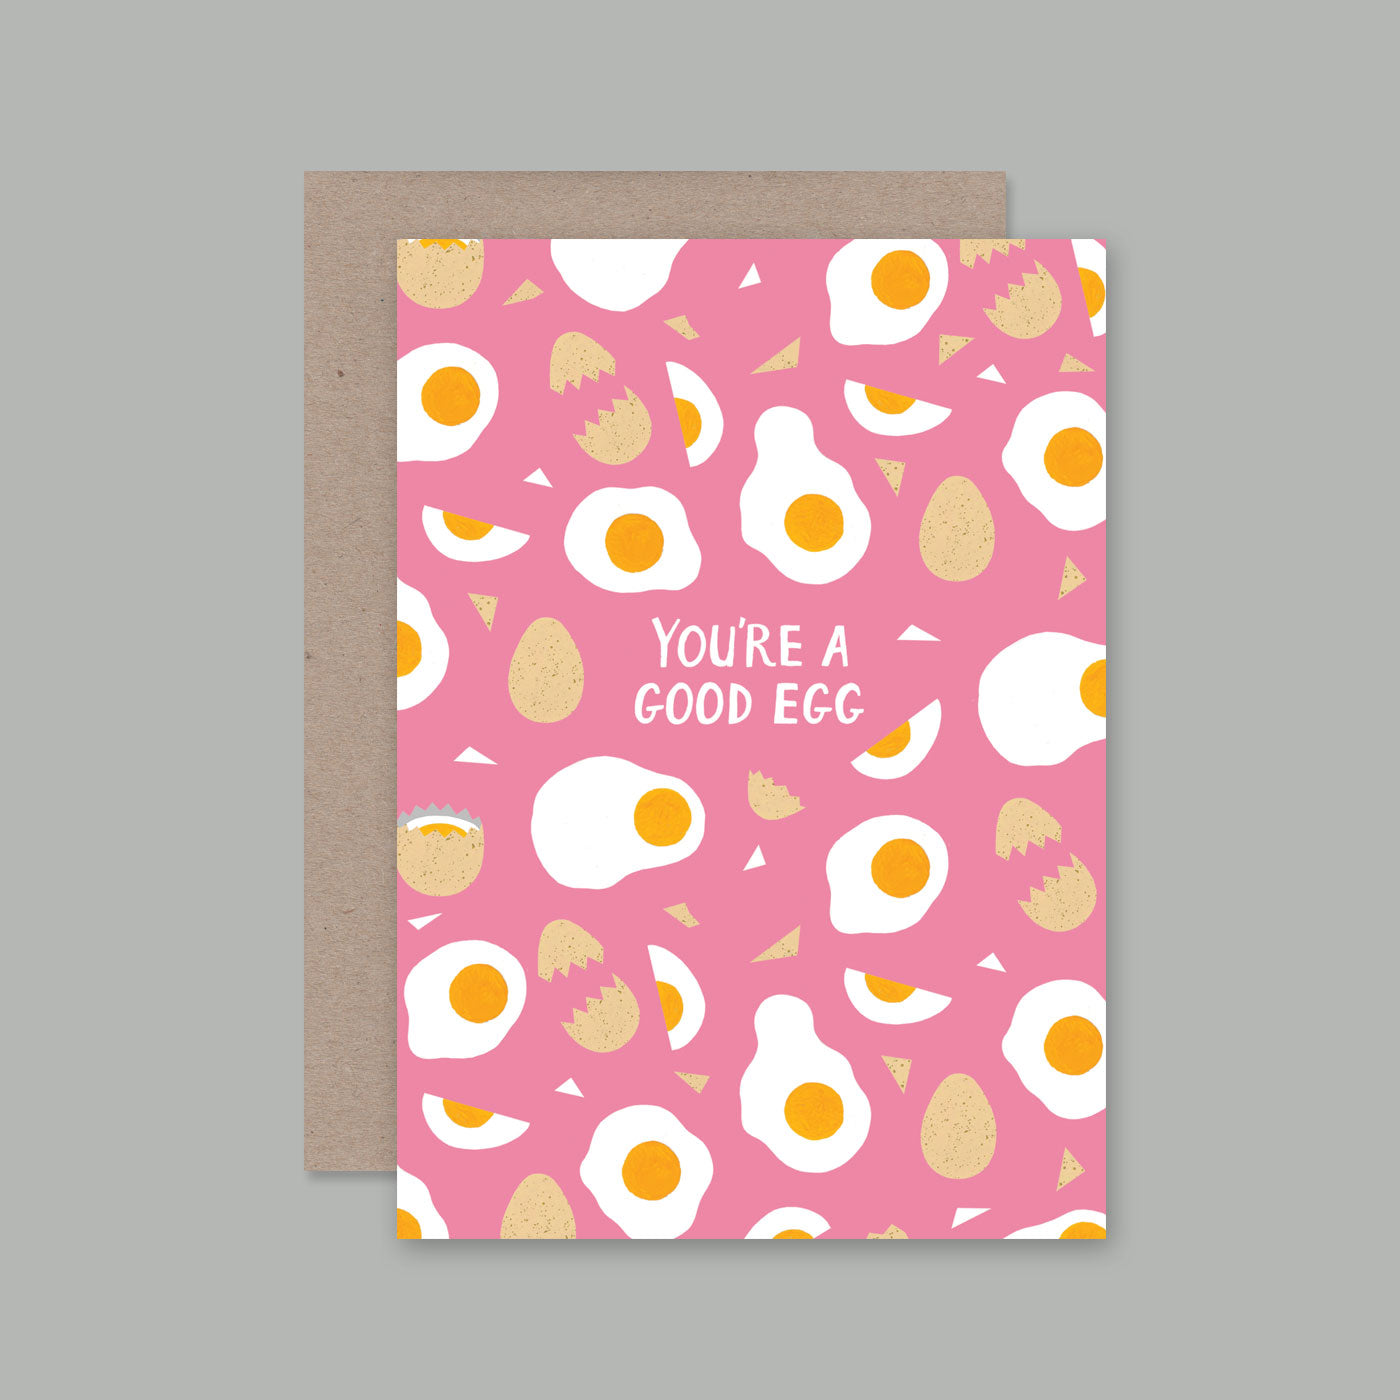 You're a Good Egg Card | AHD Paper Co.